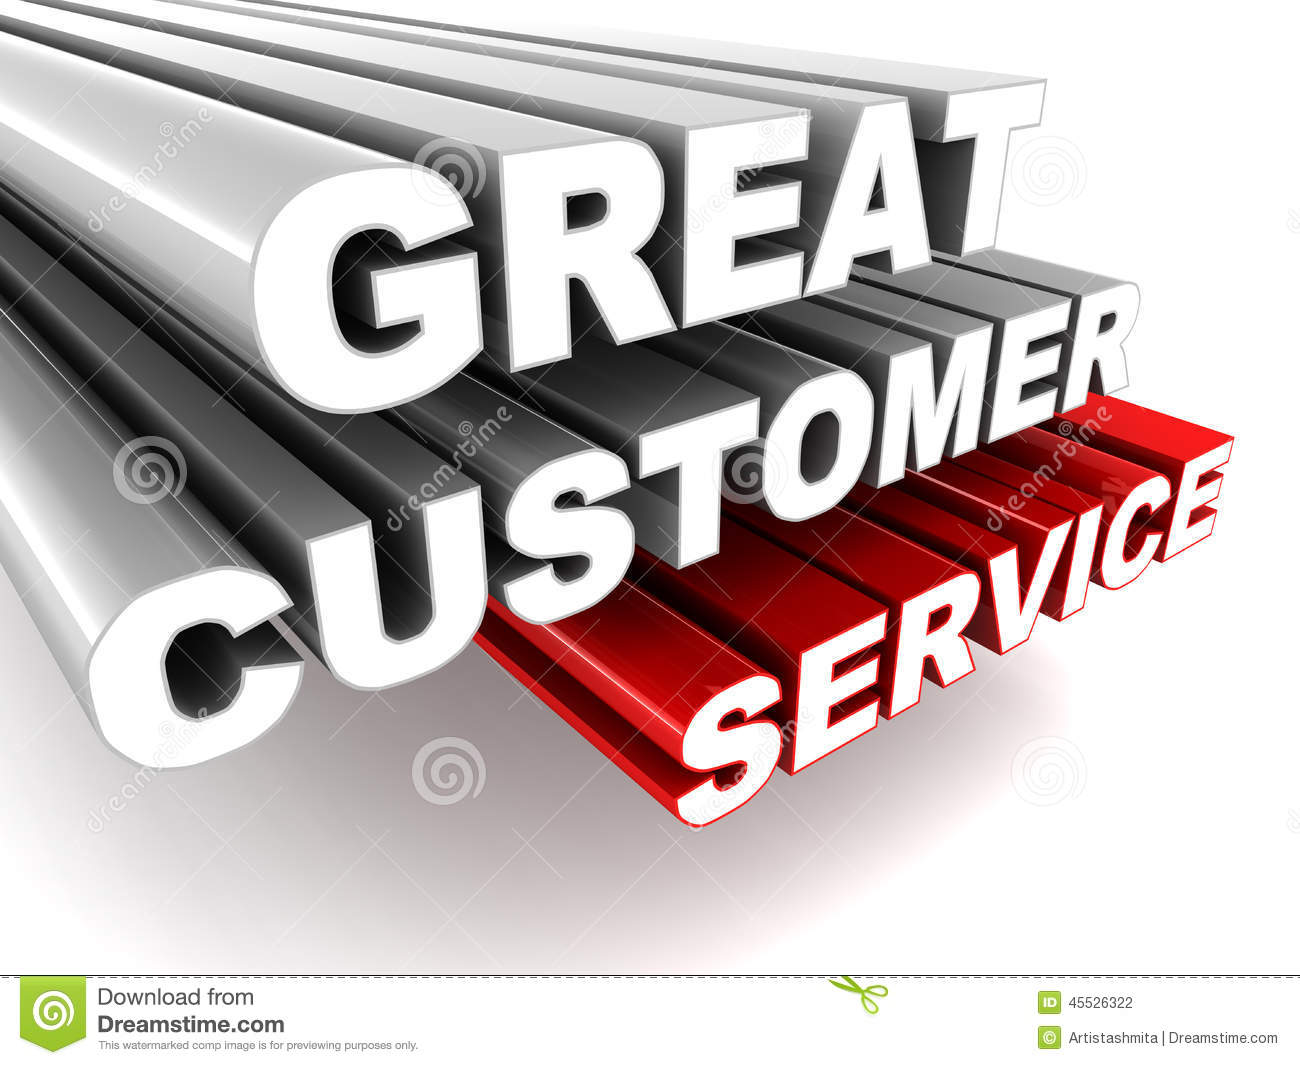 Excellent customer service clip art png freeuse stock Great Customer Service Stock Illustration - Image: 45526322 png freeuse stock